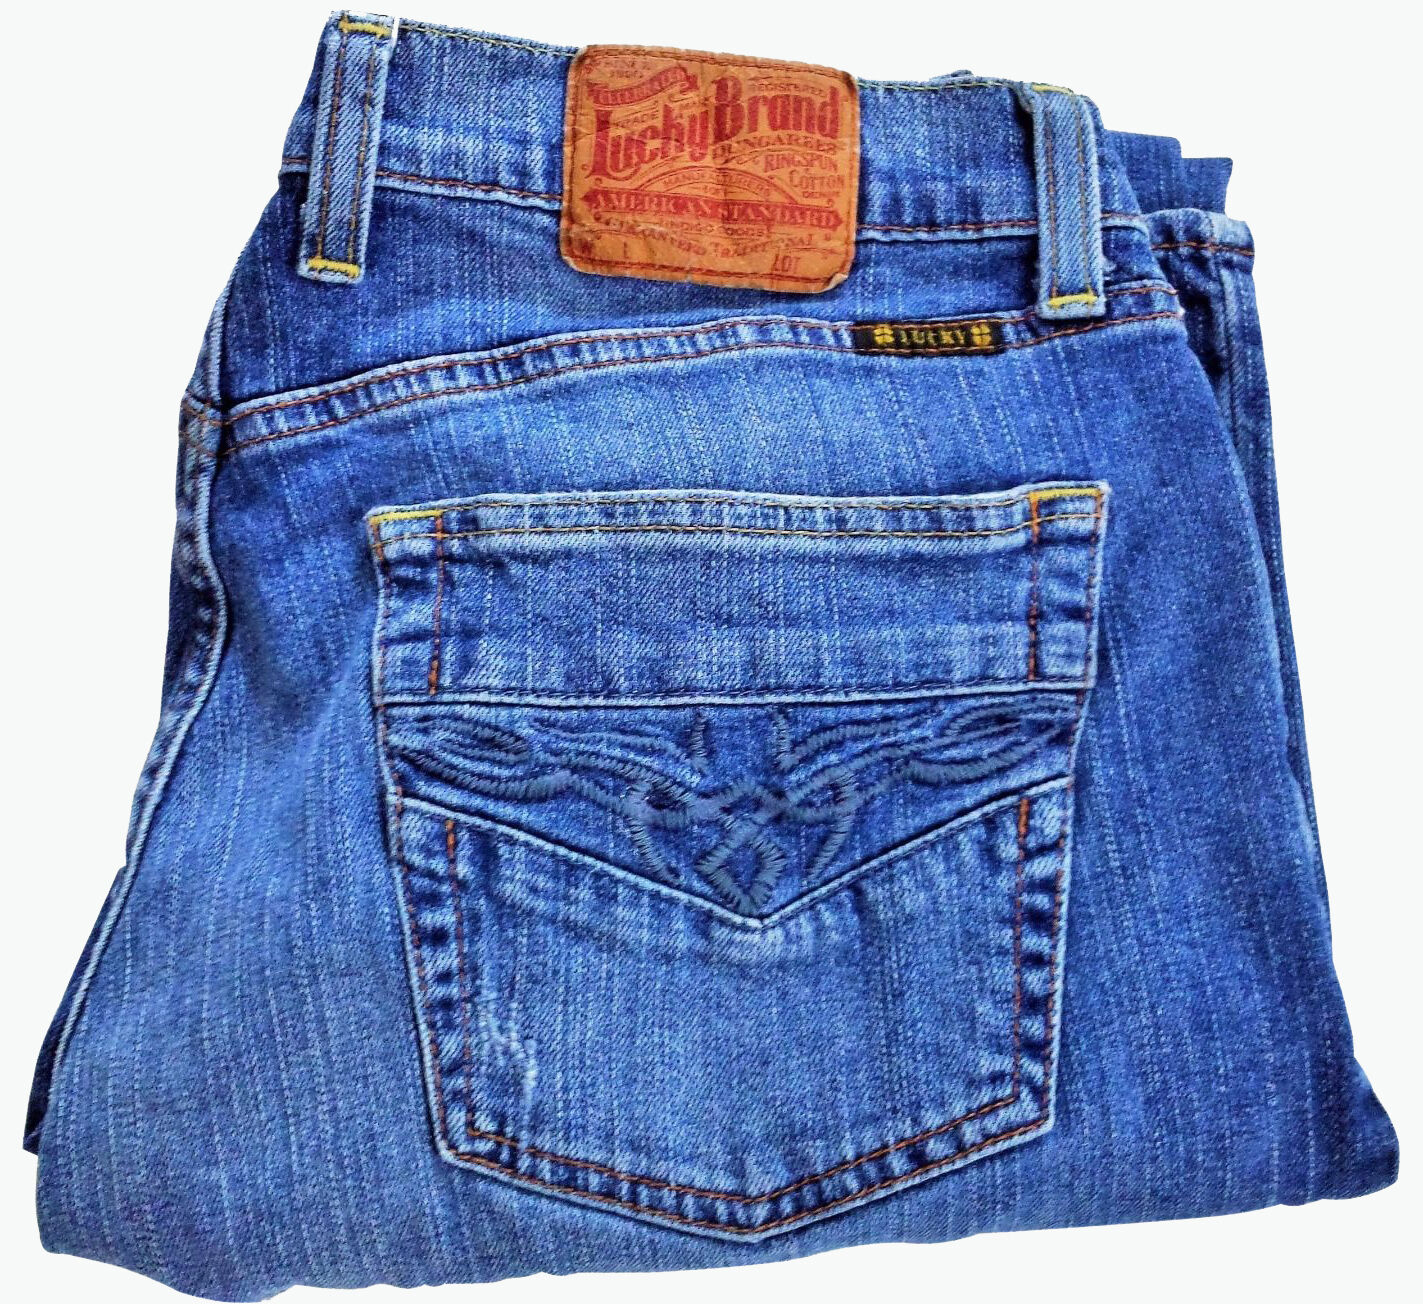 Top 10 Jeans Brands | eBay